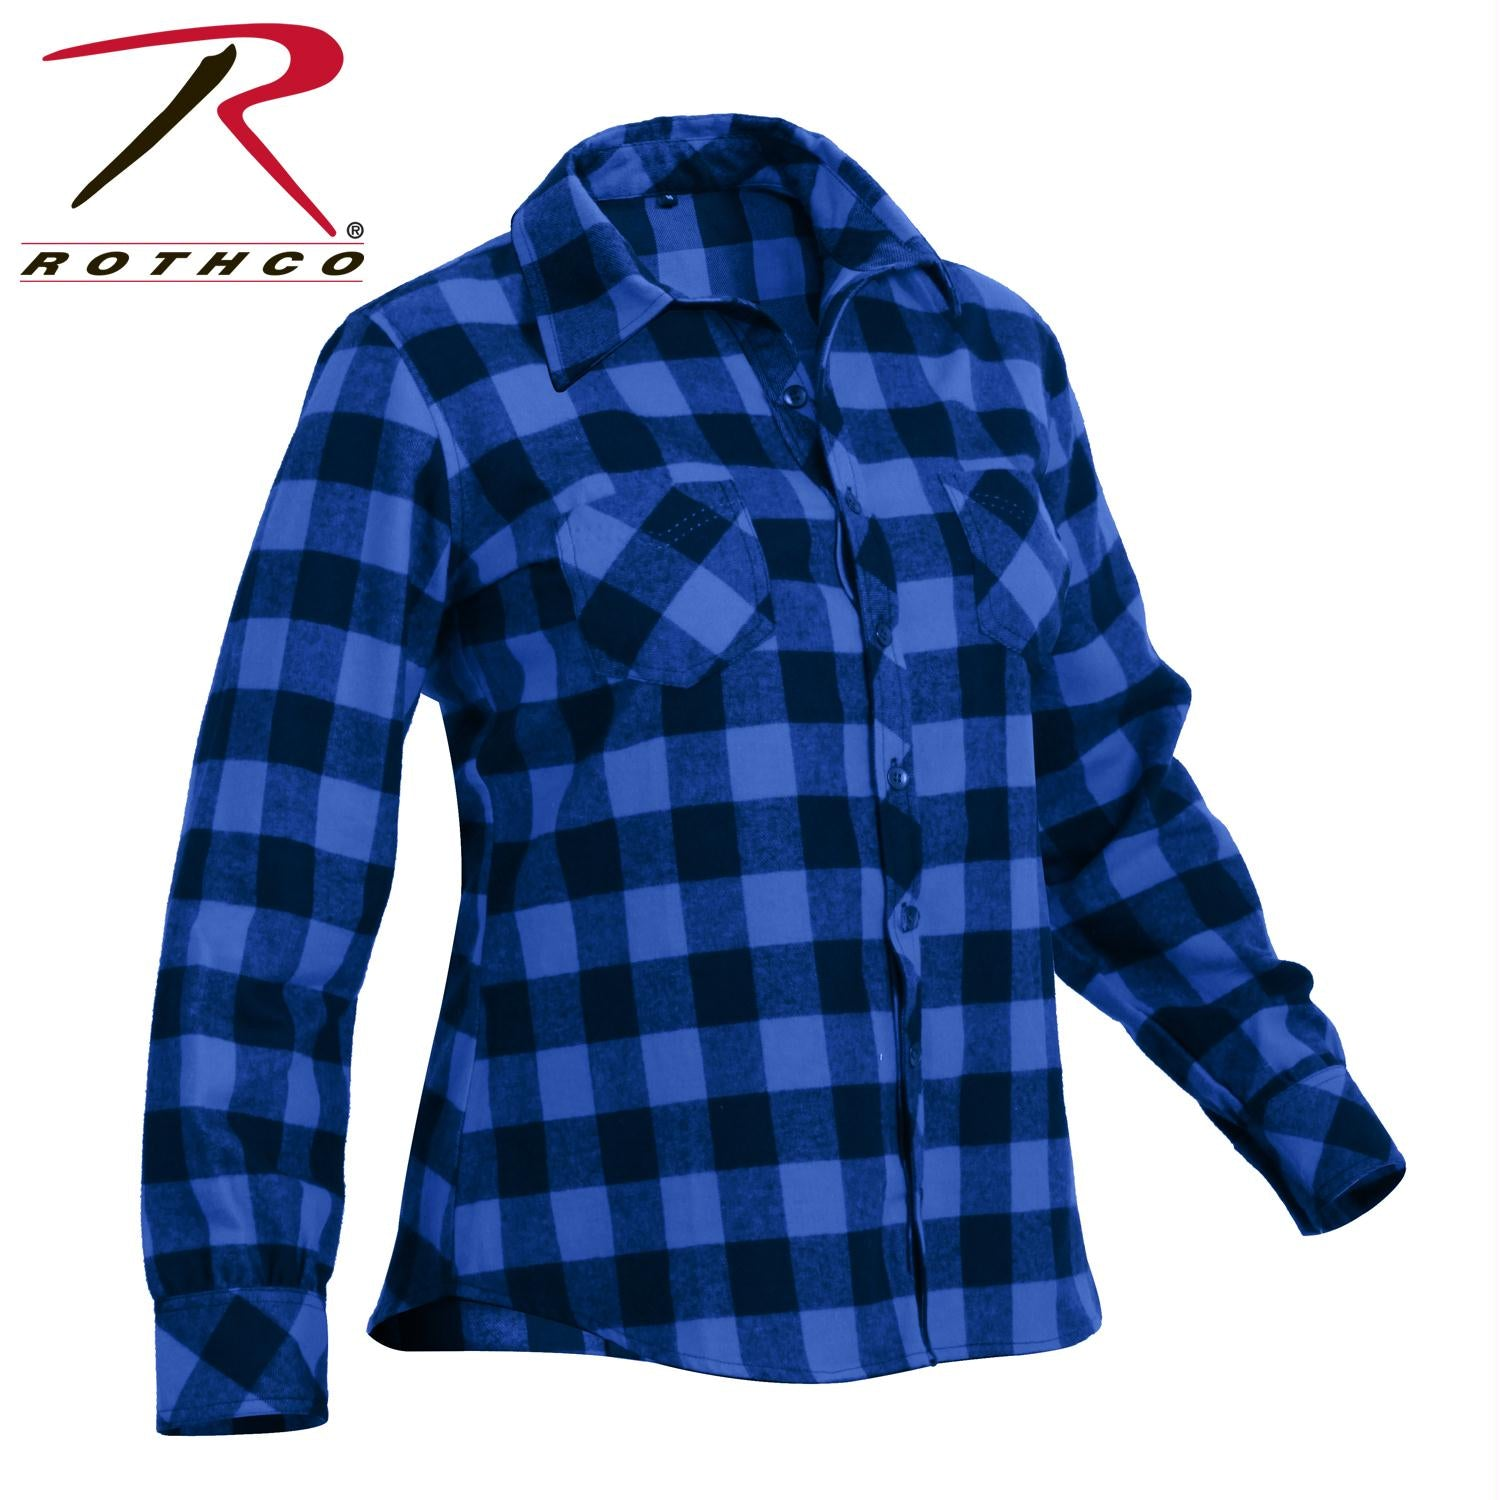 Rothco Womens Plaid Flannel Shirt - Blue / Black / 2XL